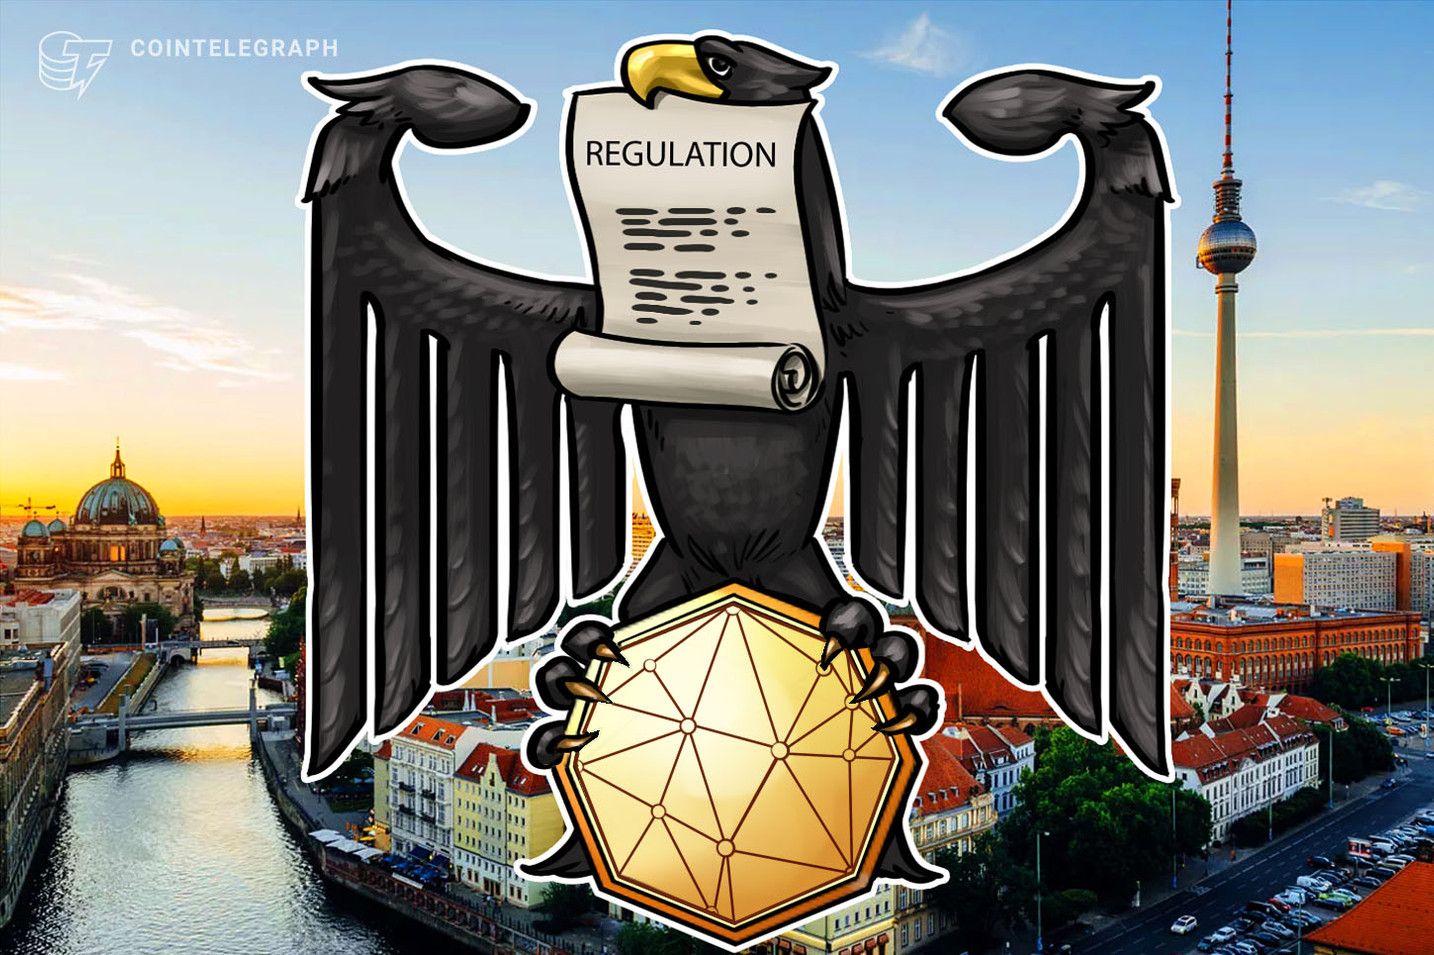 German Financial Watchdog Warns Public About Unauthorized Crypto Offering